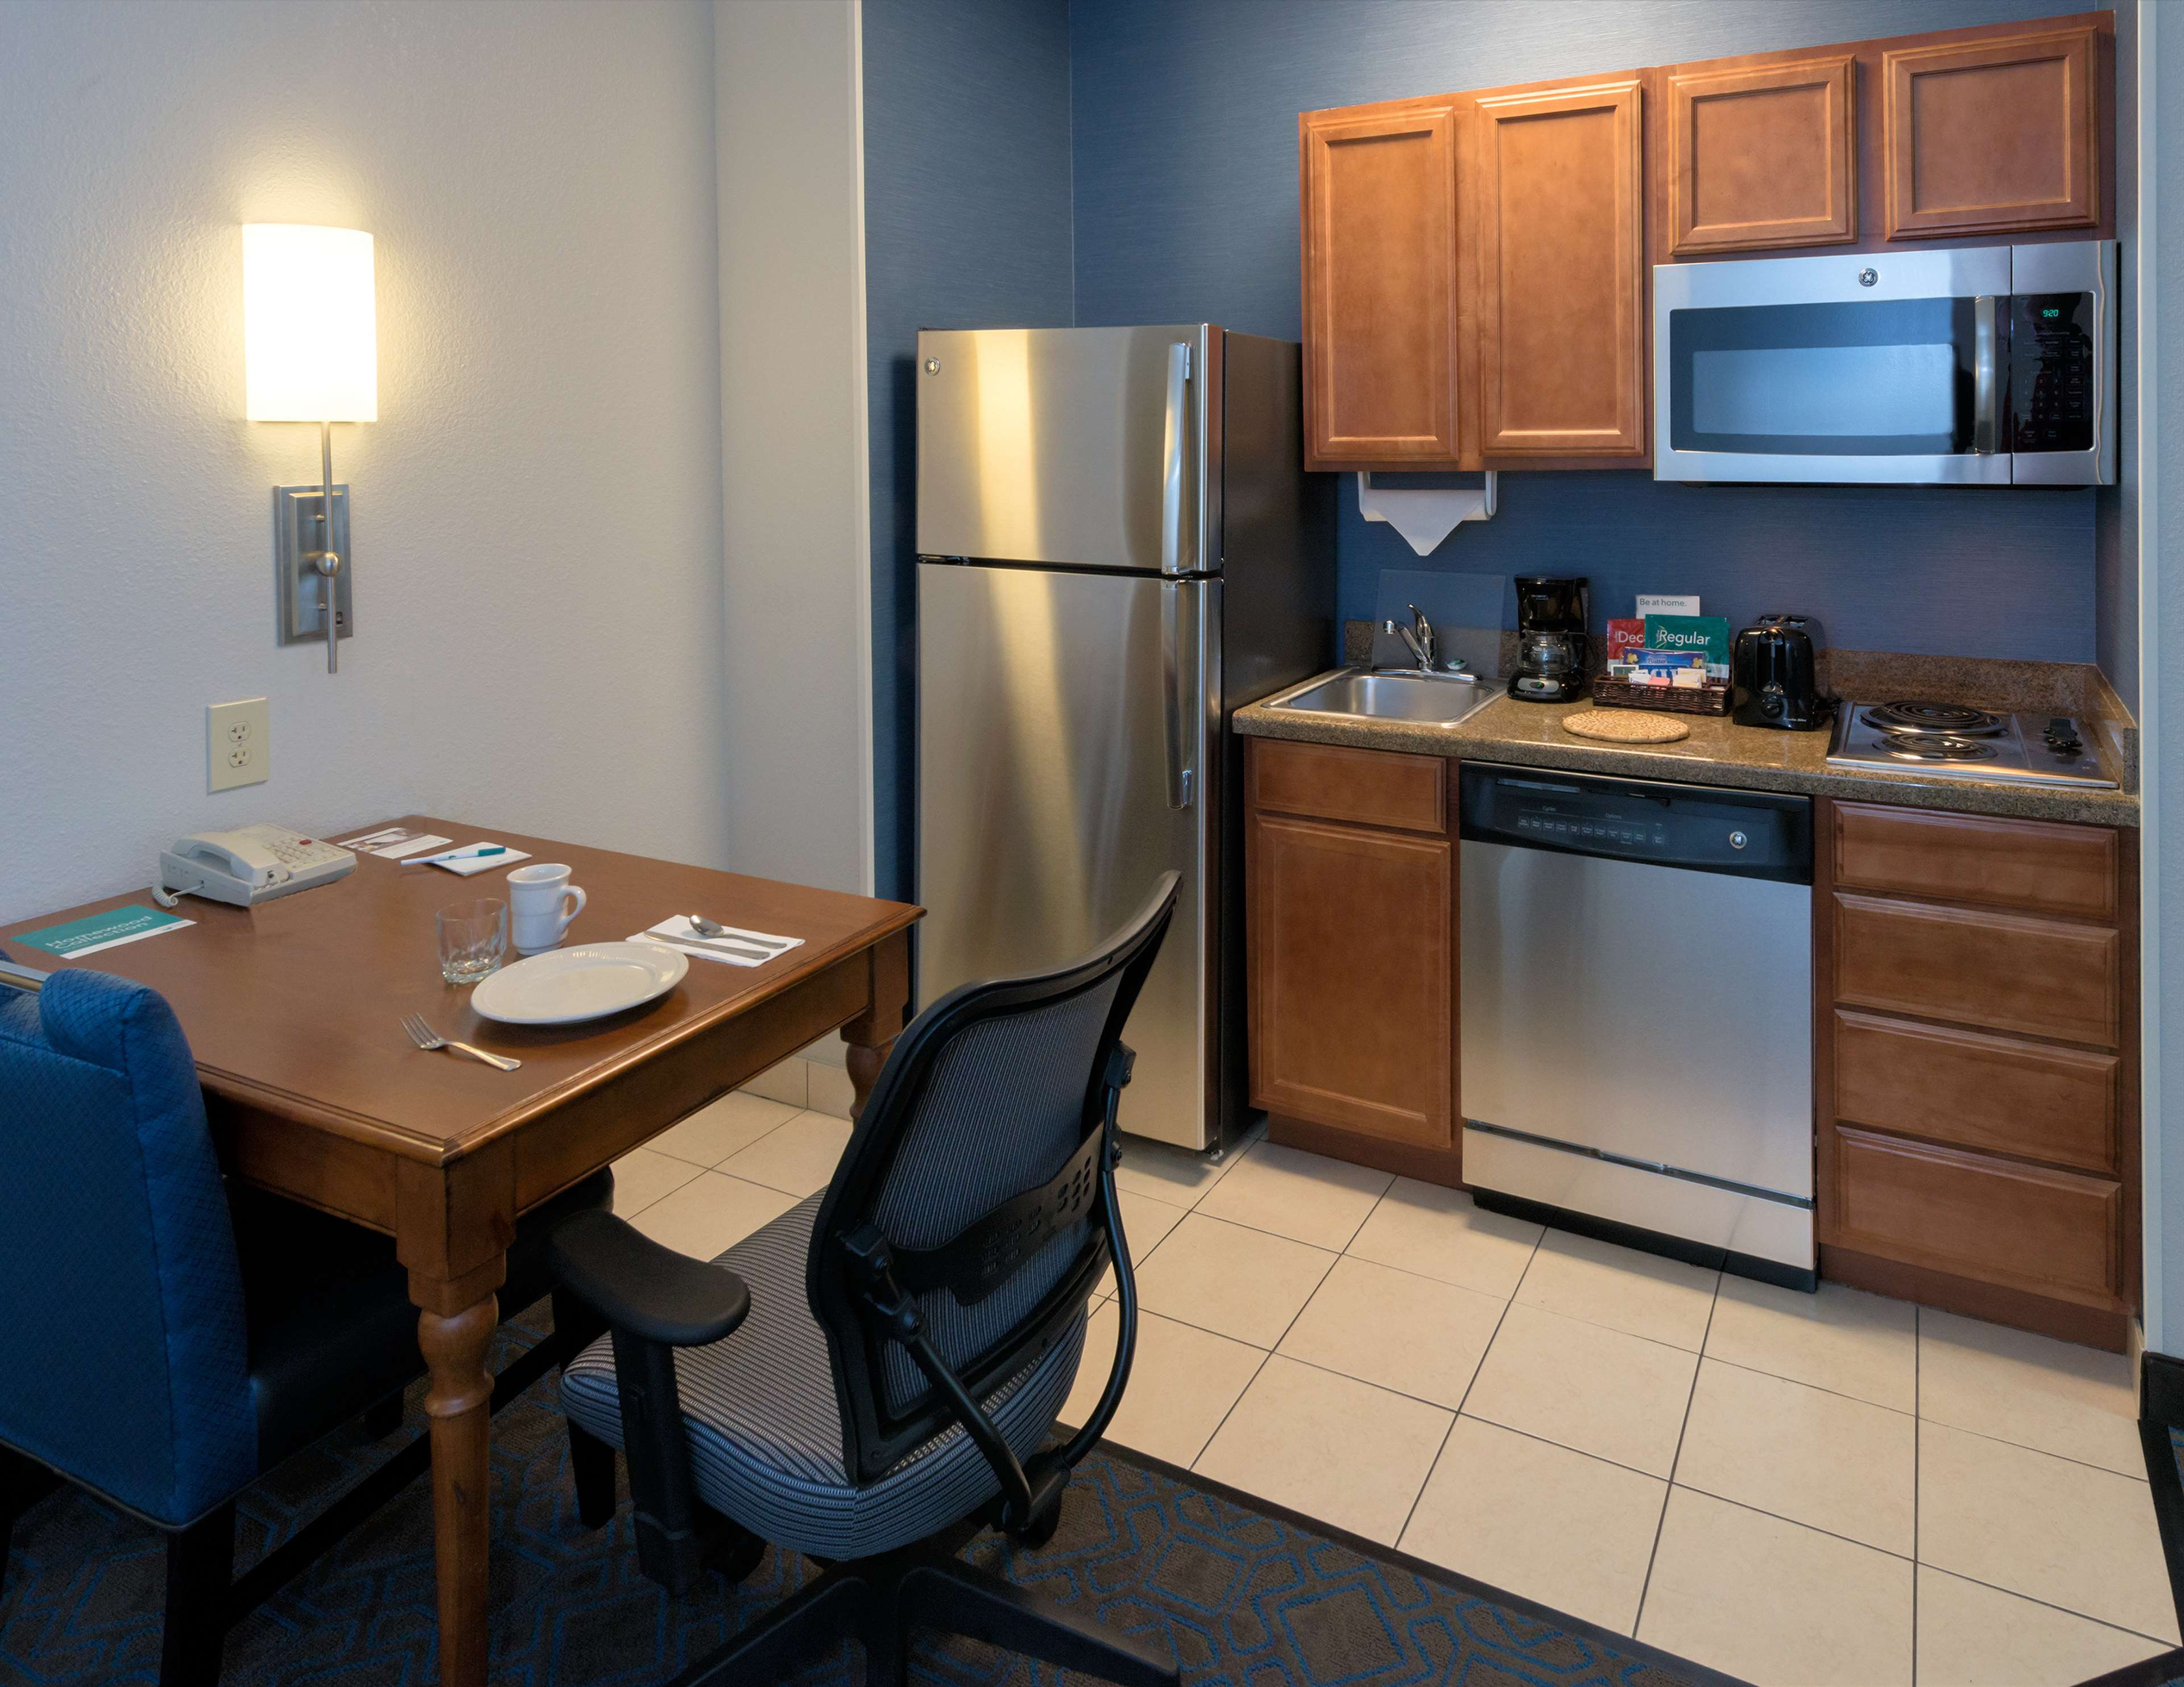 Homewood Suites by Hilton New Orleans image 19